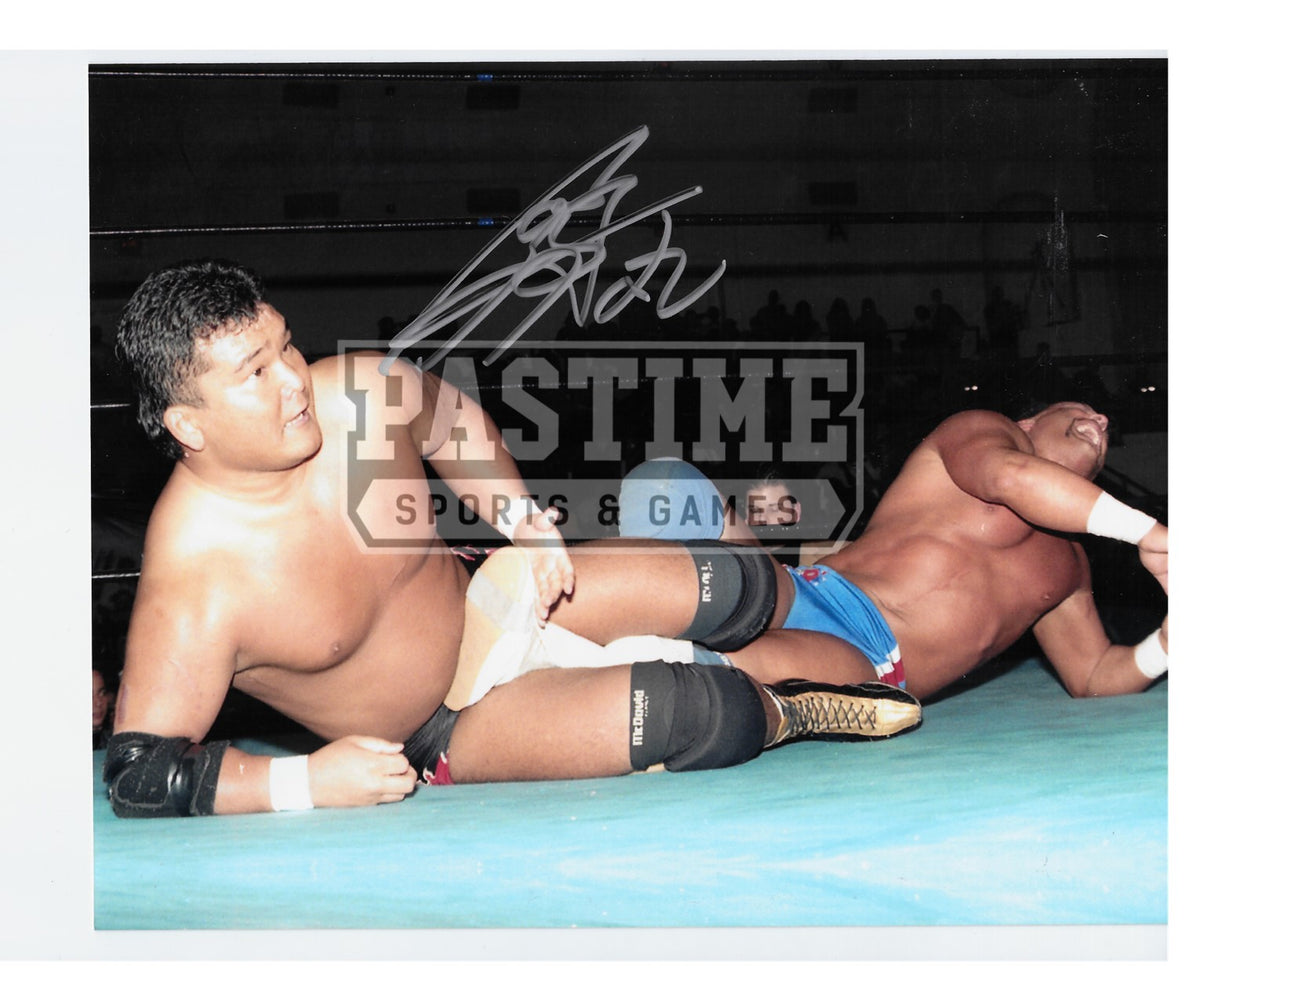 Masato Tanaka Autographed Wrestling Photo 8x10 - Pastime Sports & Games